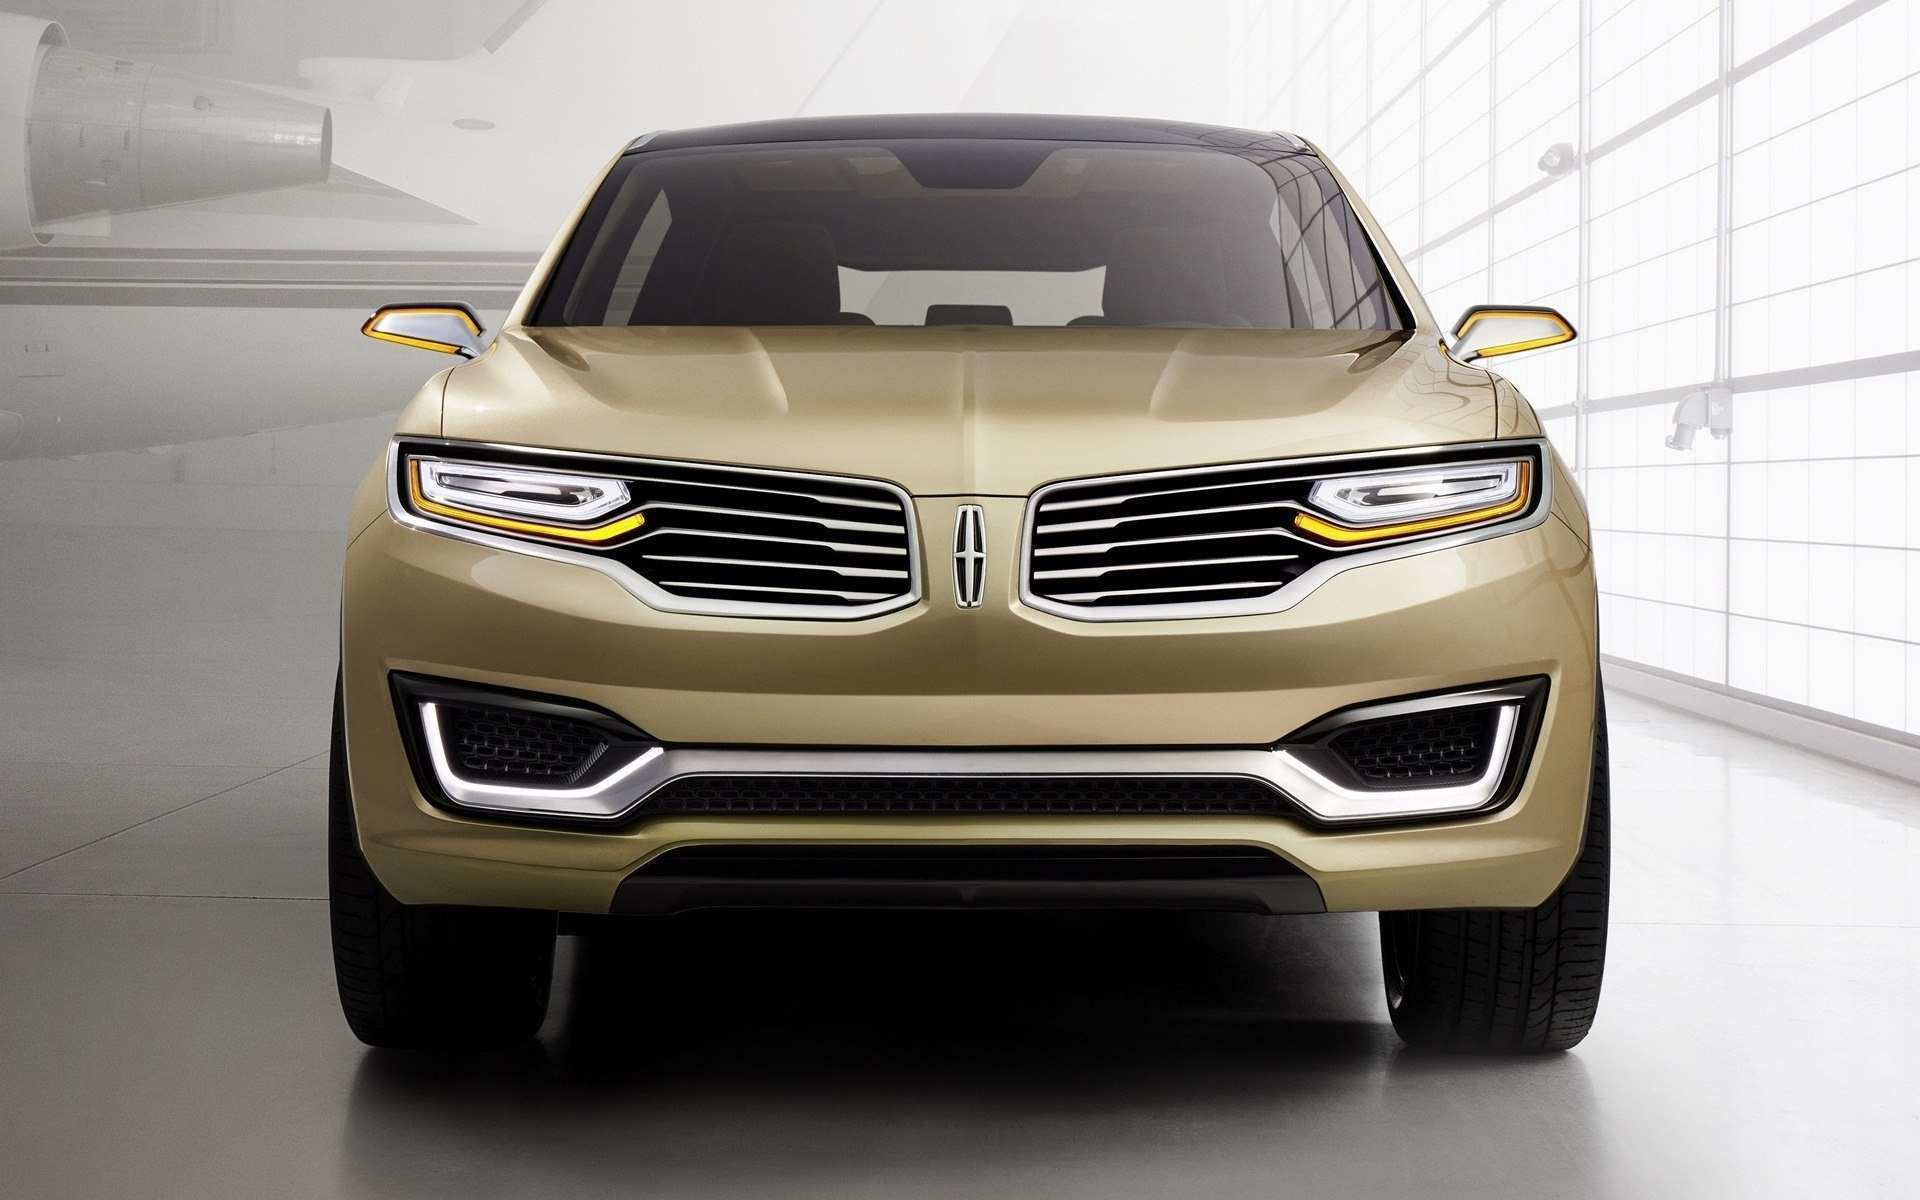 58 All New 2020 Lincoln MKS Rumors